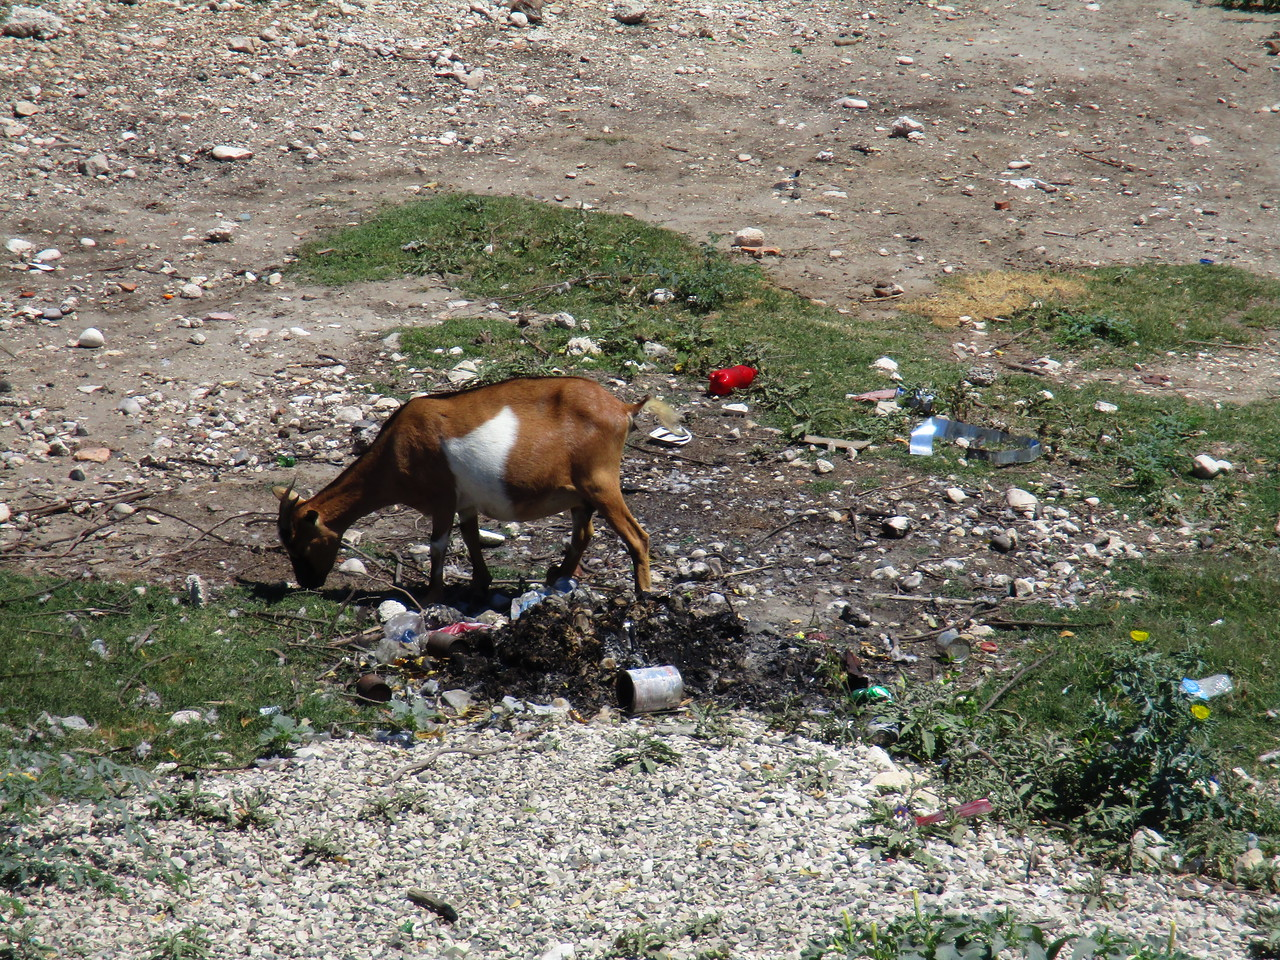 Goat sifting through the trash